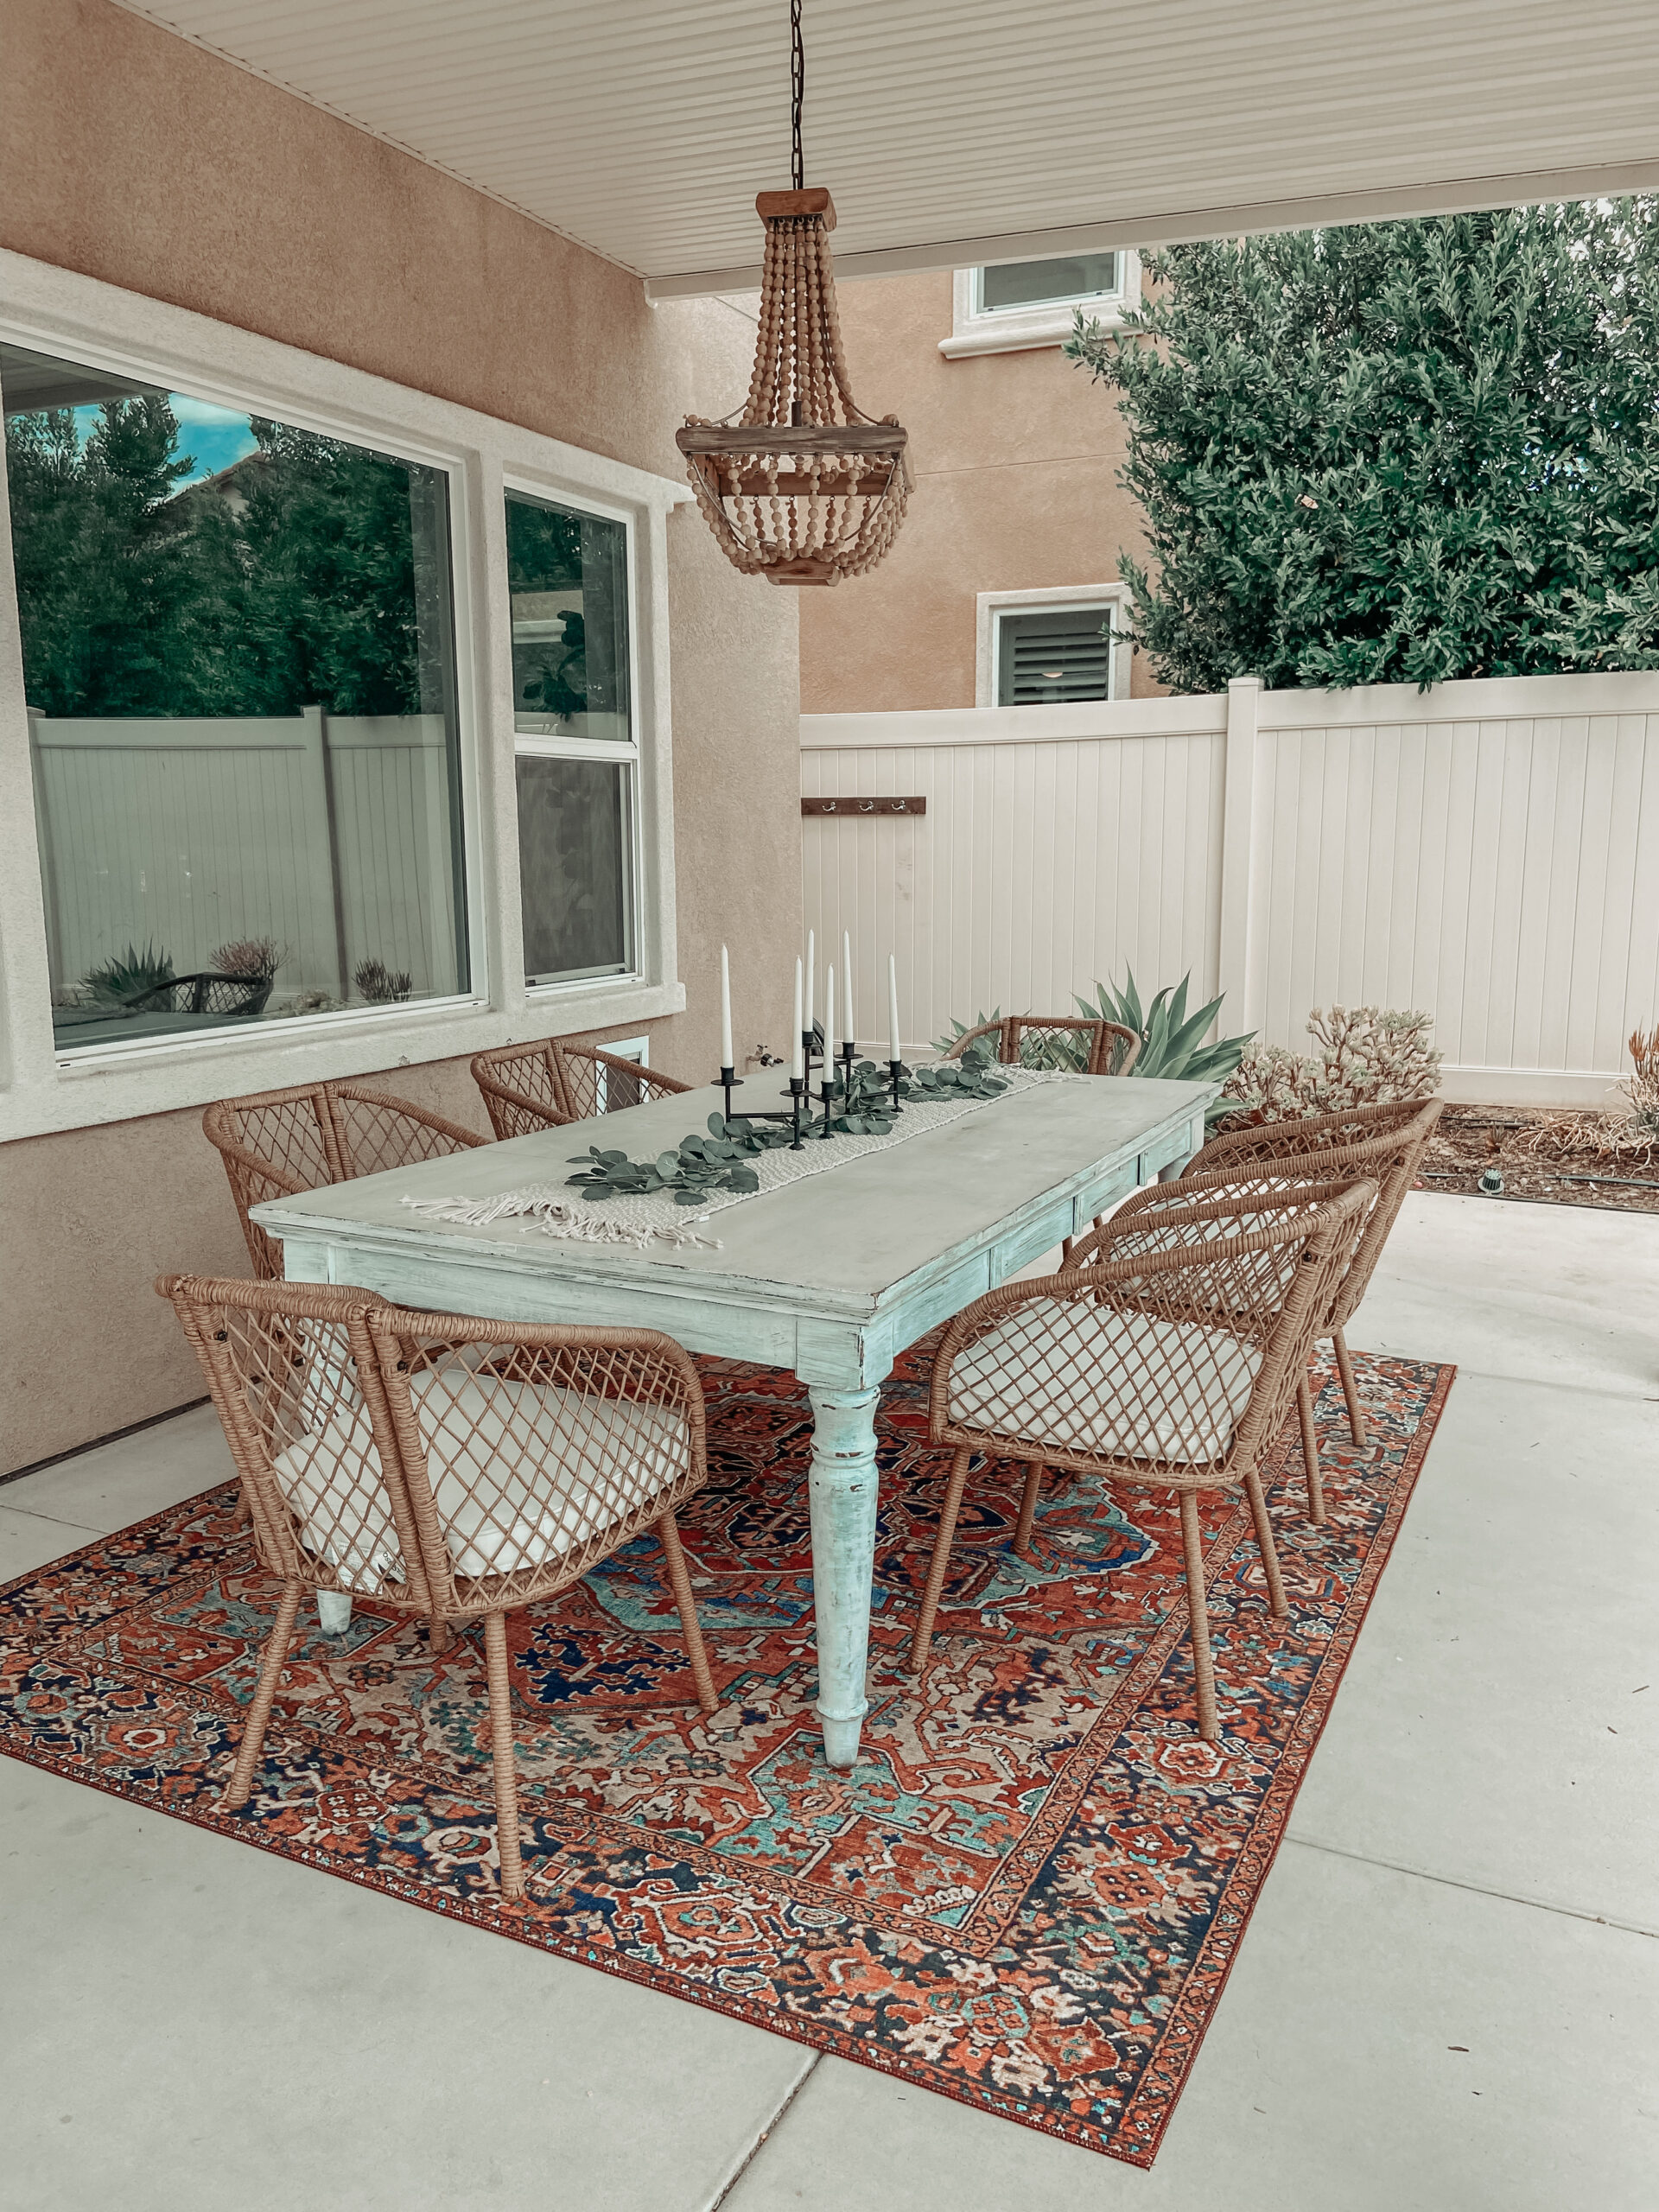 BACKYARD SUMMER REFRESH- Jaclyn De Leon Style + sharing my latest home decor patio updates, boho style, outdoor dining, amazon home, target home finds